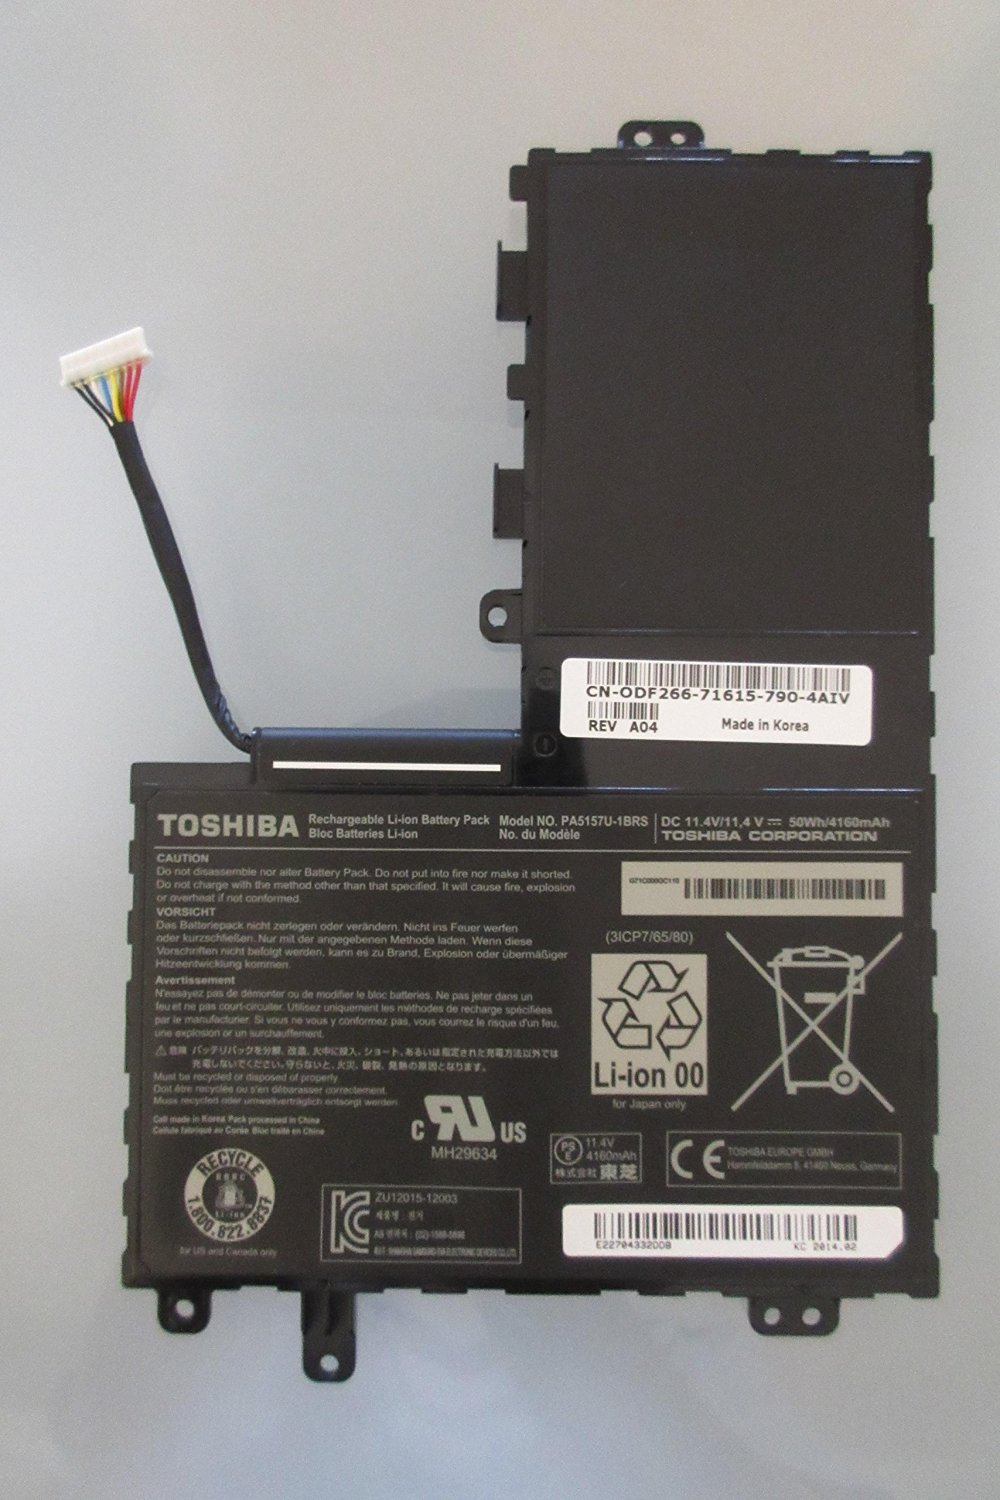 Li-ion 3 Cell Battery 50Wh 11.4V for Toshiba Satellite E45T-A4100 E45T-A4200 New Genuine